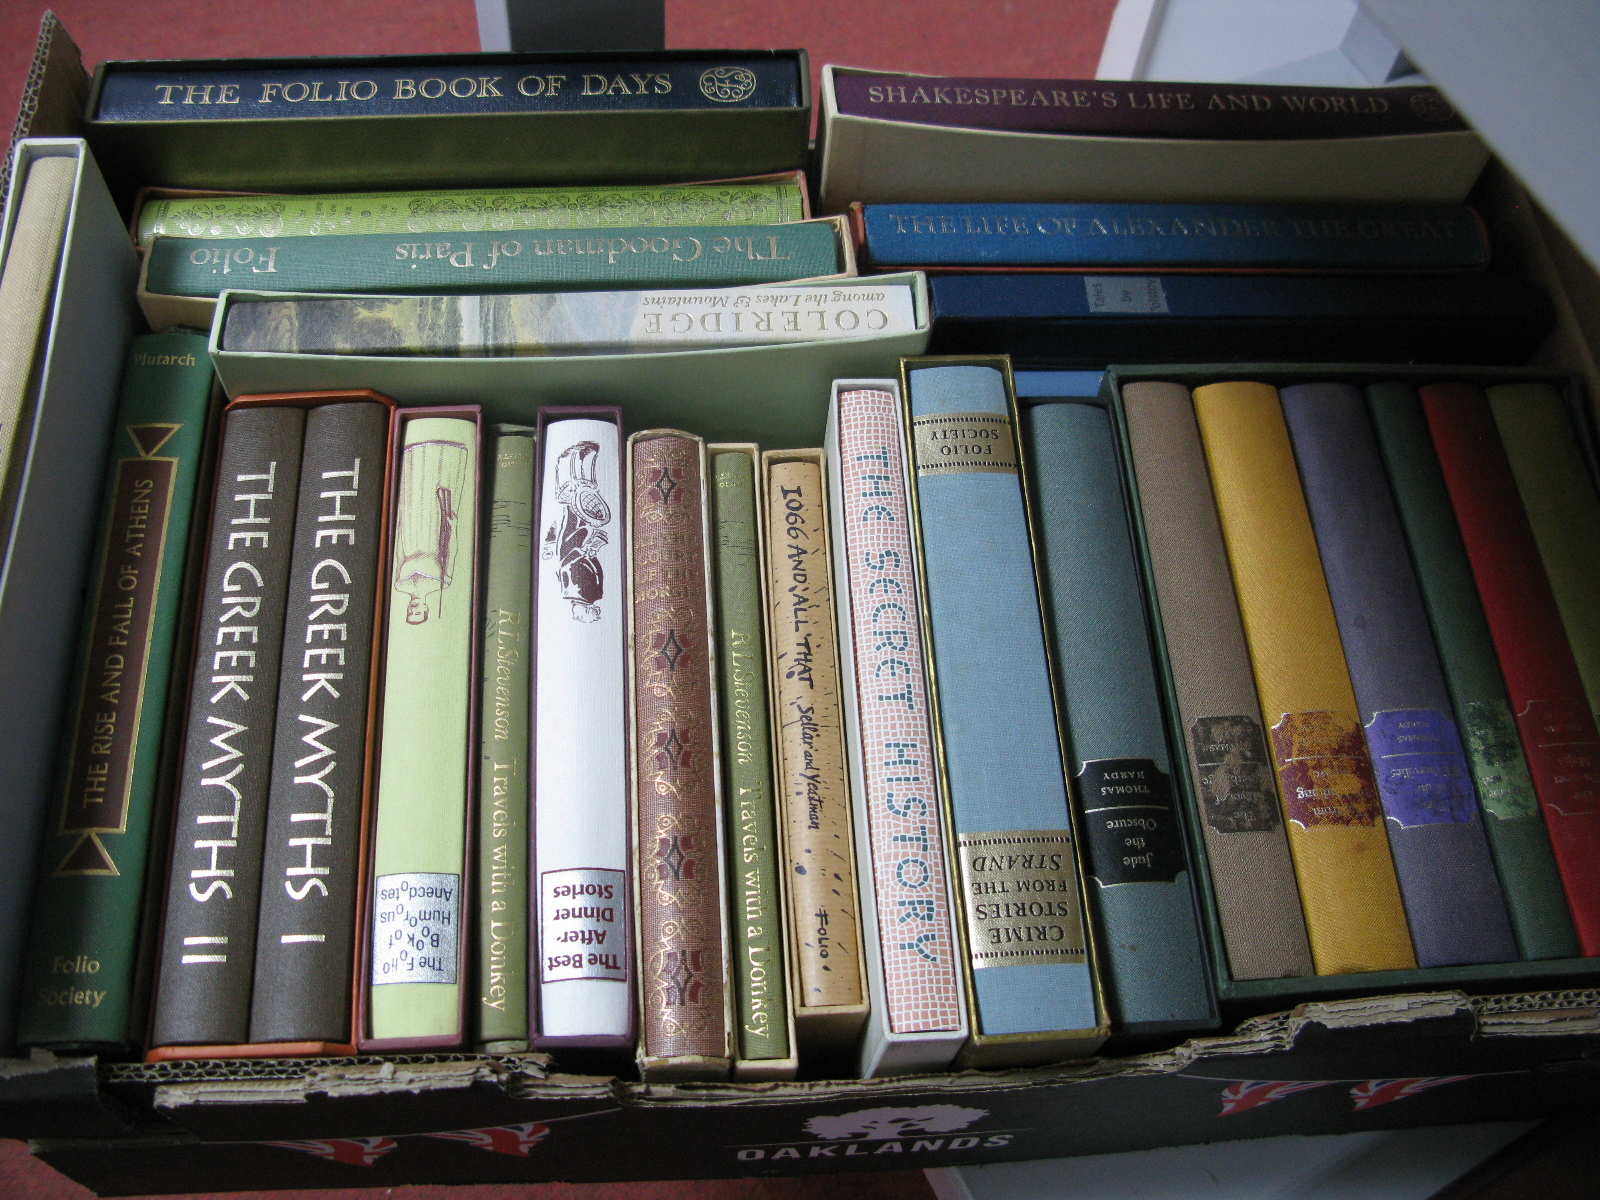 Thomas Hardy - The Wessex Tales, six volumes, The Folio Society, in slipcases; plus other general